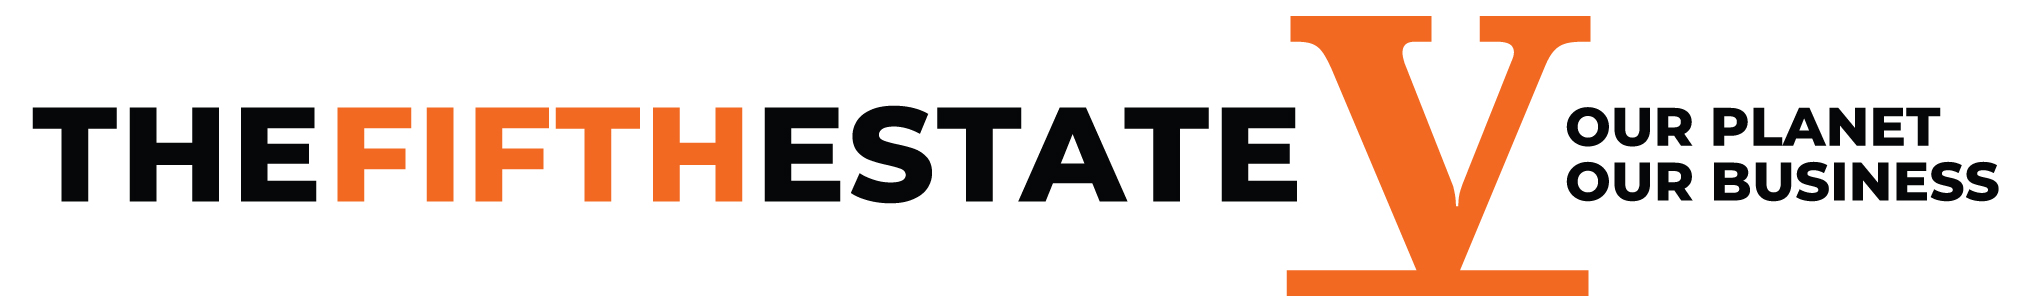 The Fifth Estate Logo and Website